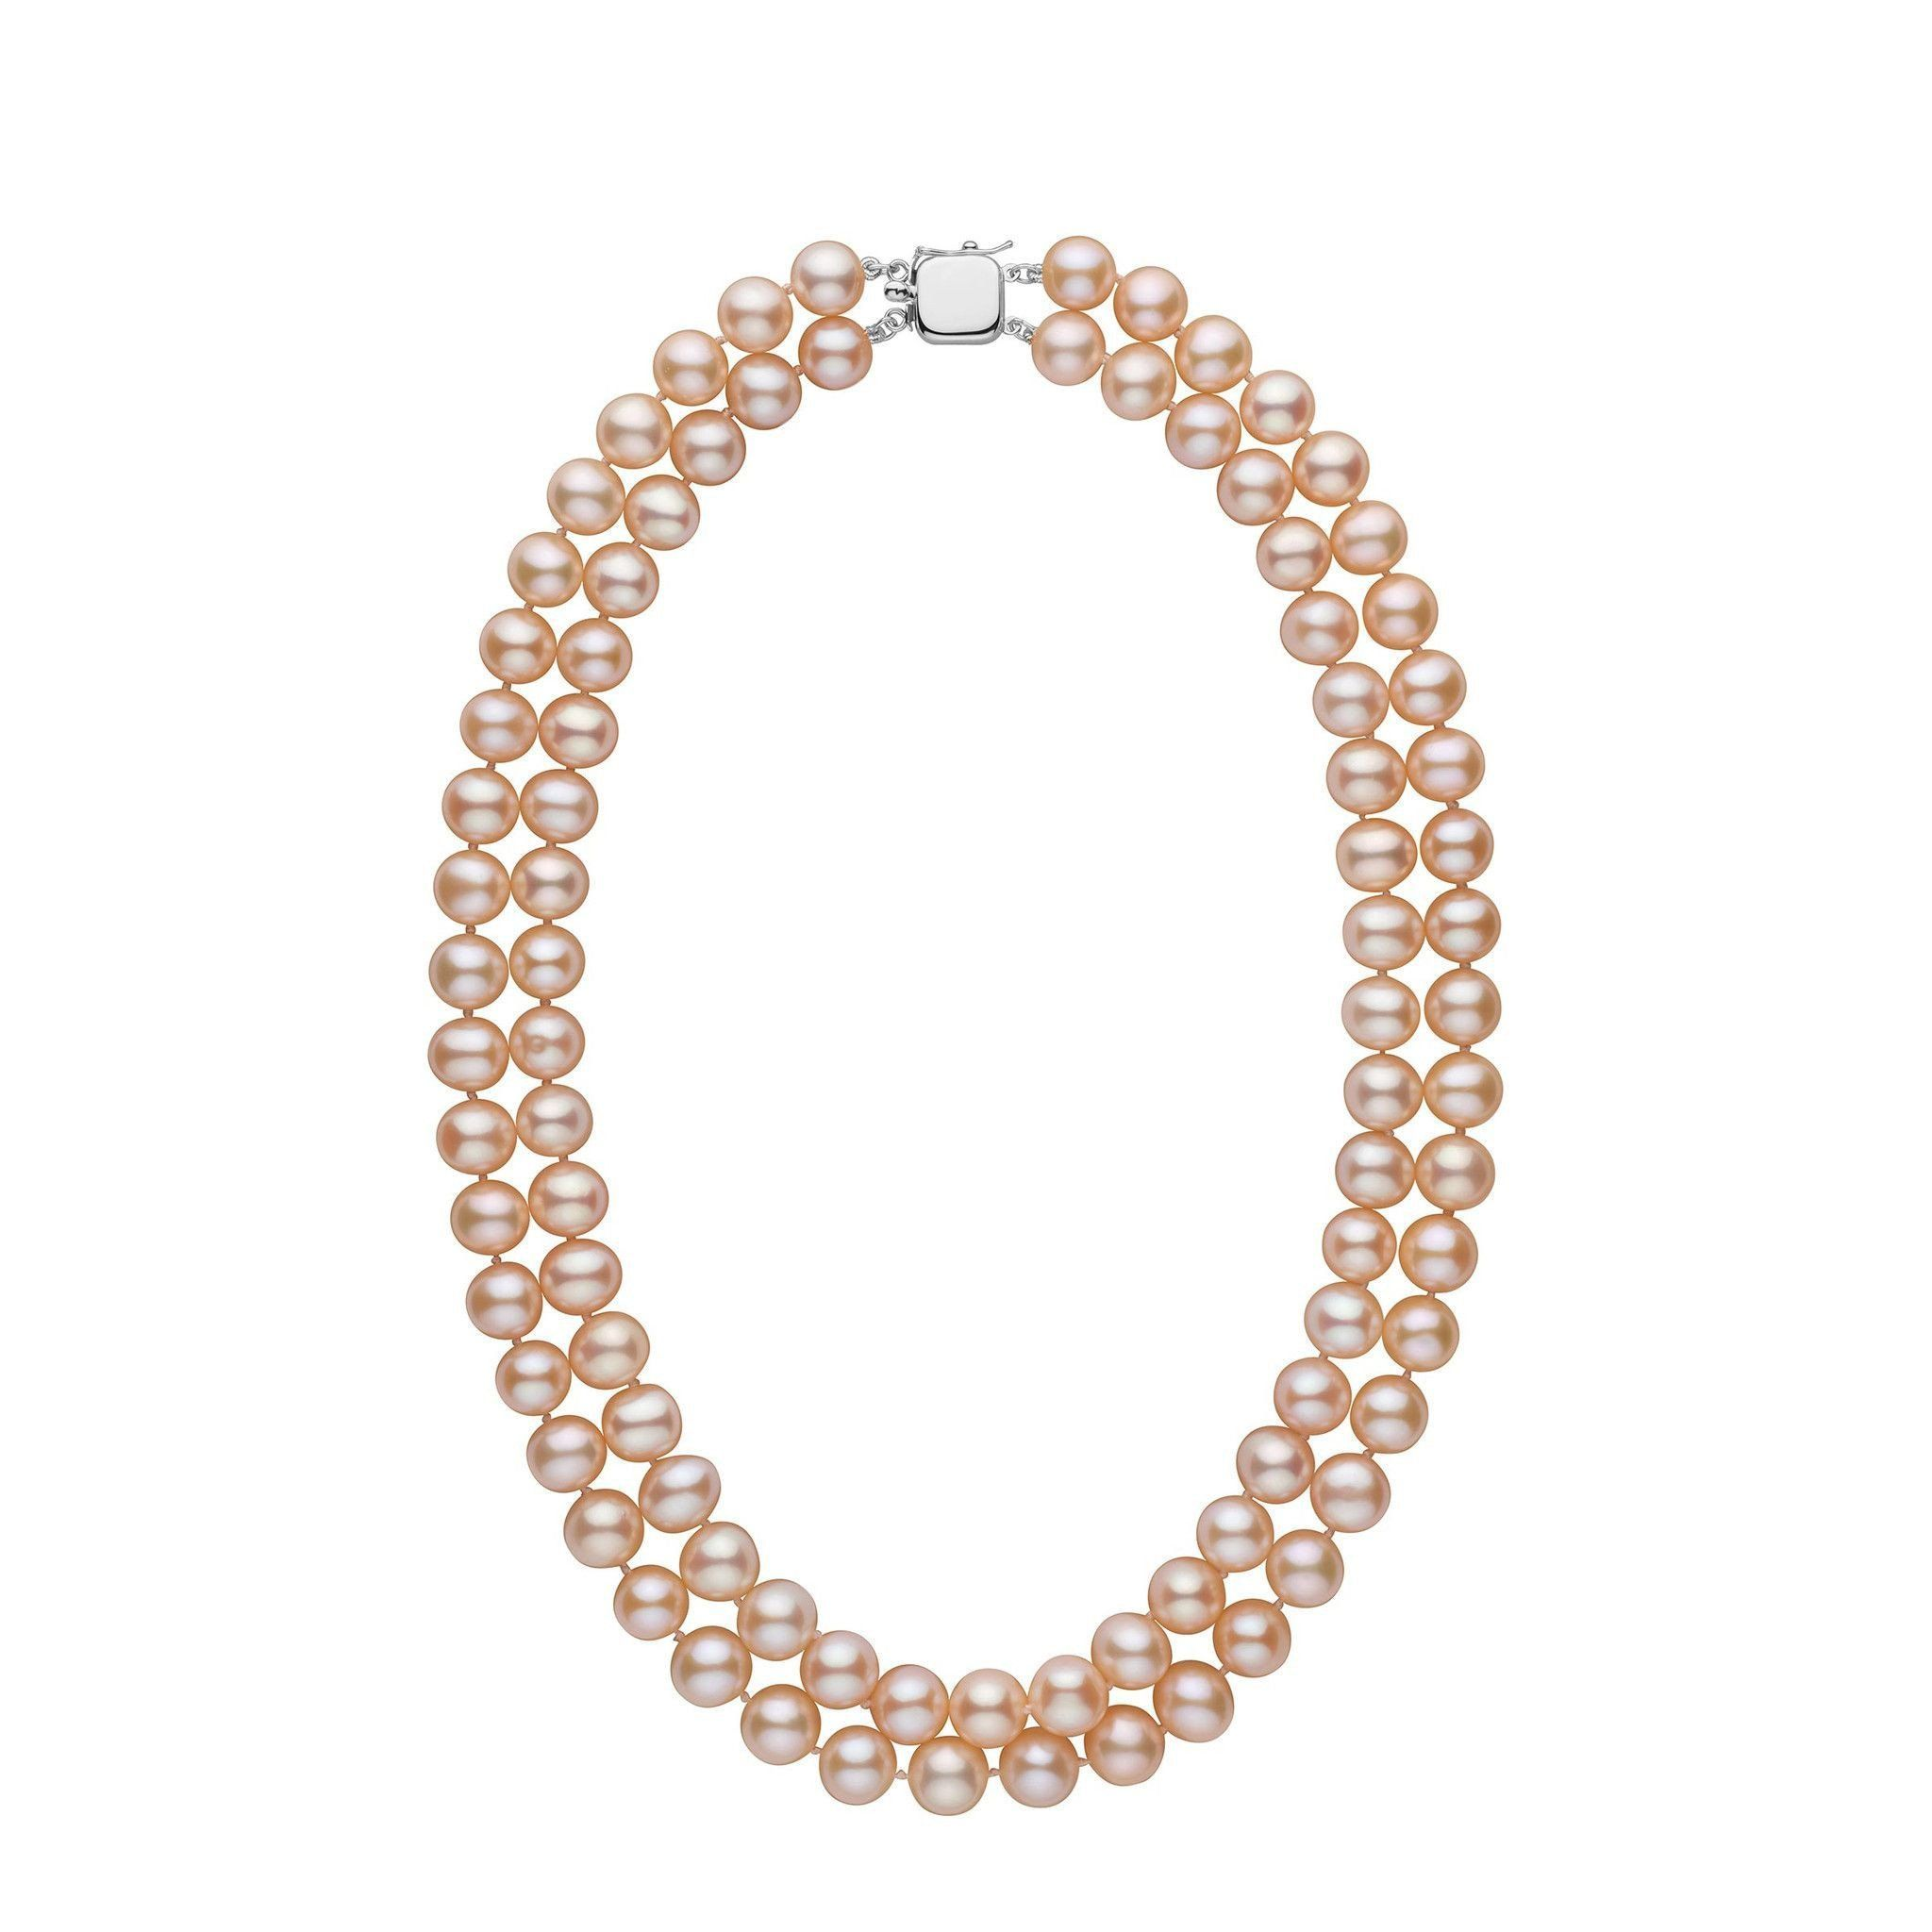 Double Strand 8.5-9.0 mm AA+ Pink to Peach Freshwater Pearl Necklace